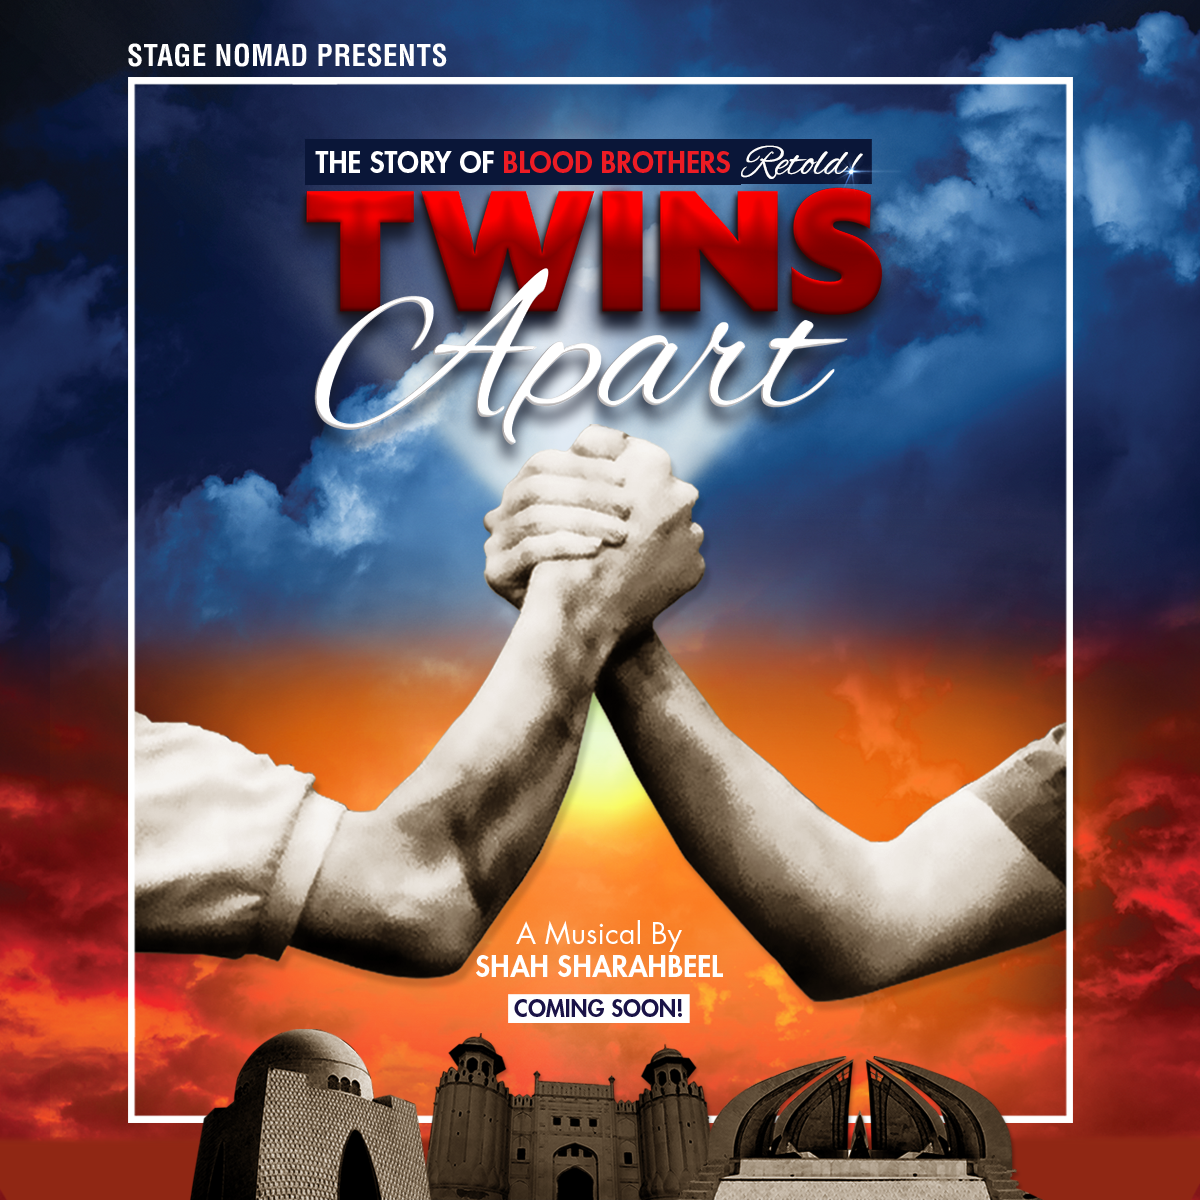 shah sharabeel to make a comeback with twins apart musical